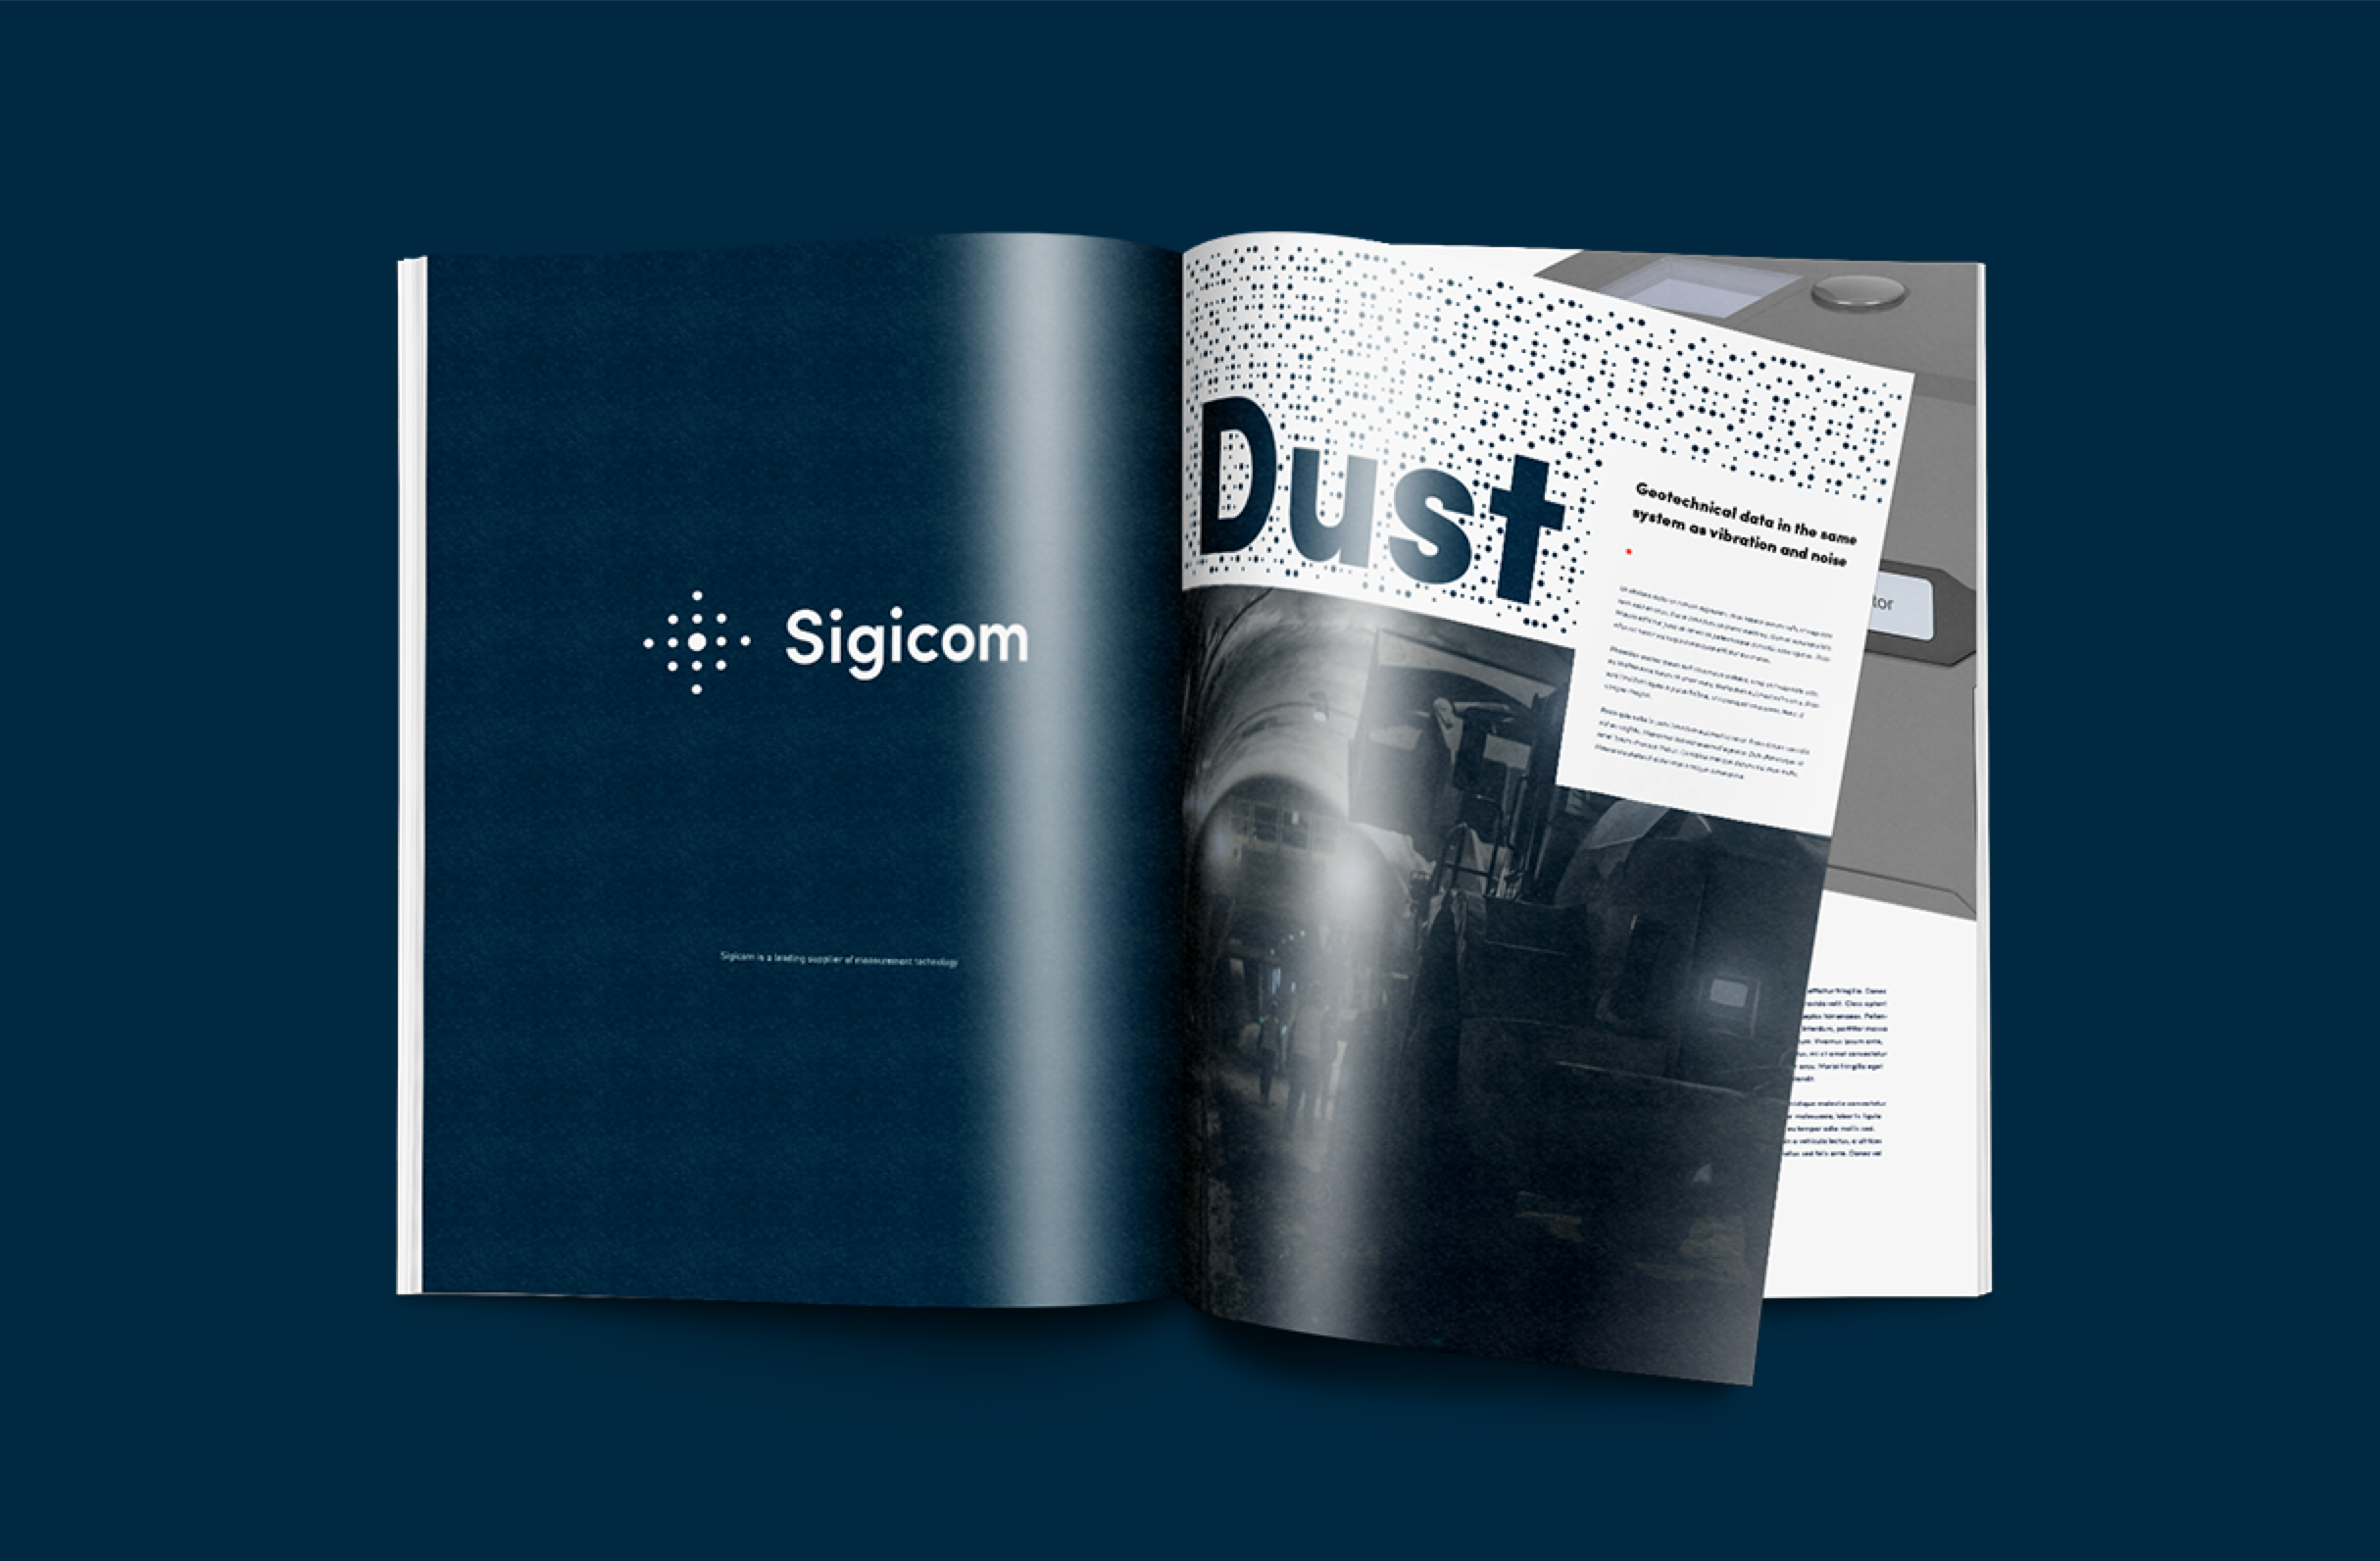 Digital strategy and design for Sigicom brand. Material from the process. Application test, the new brand identity in catalogue